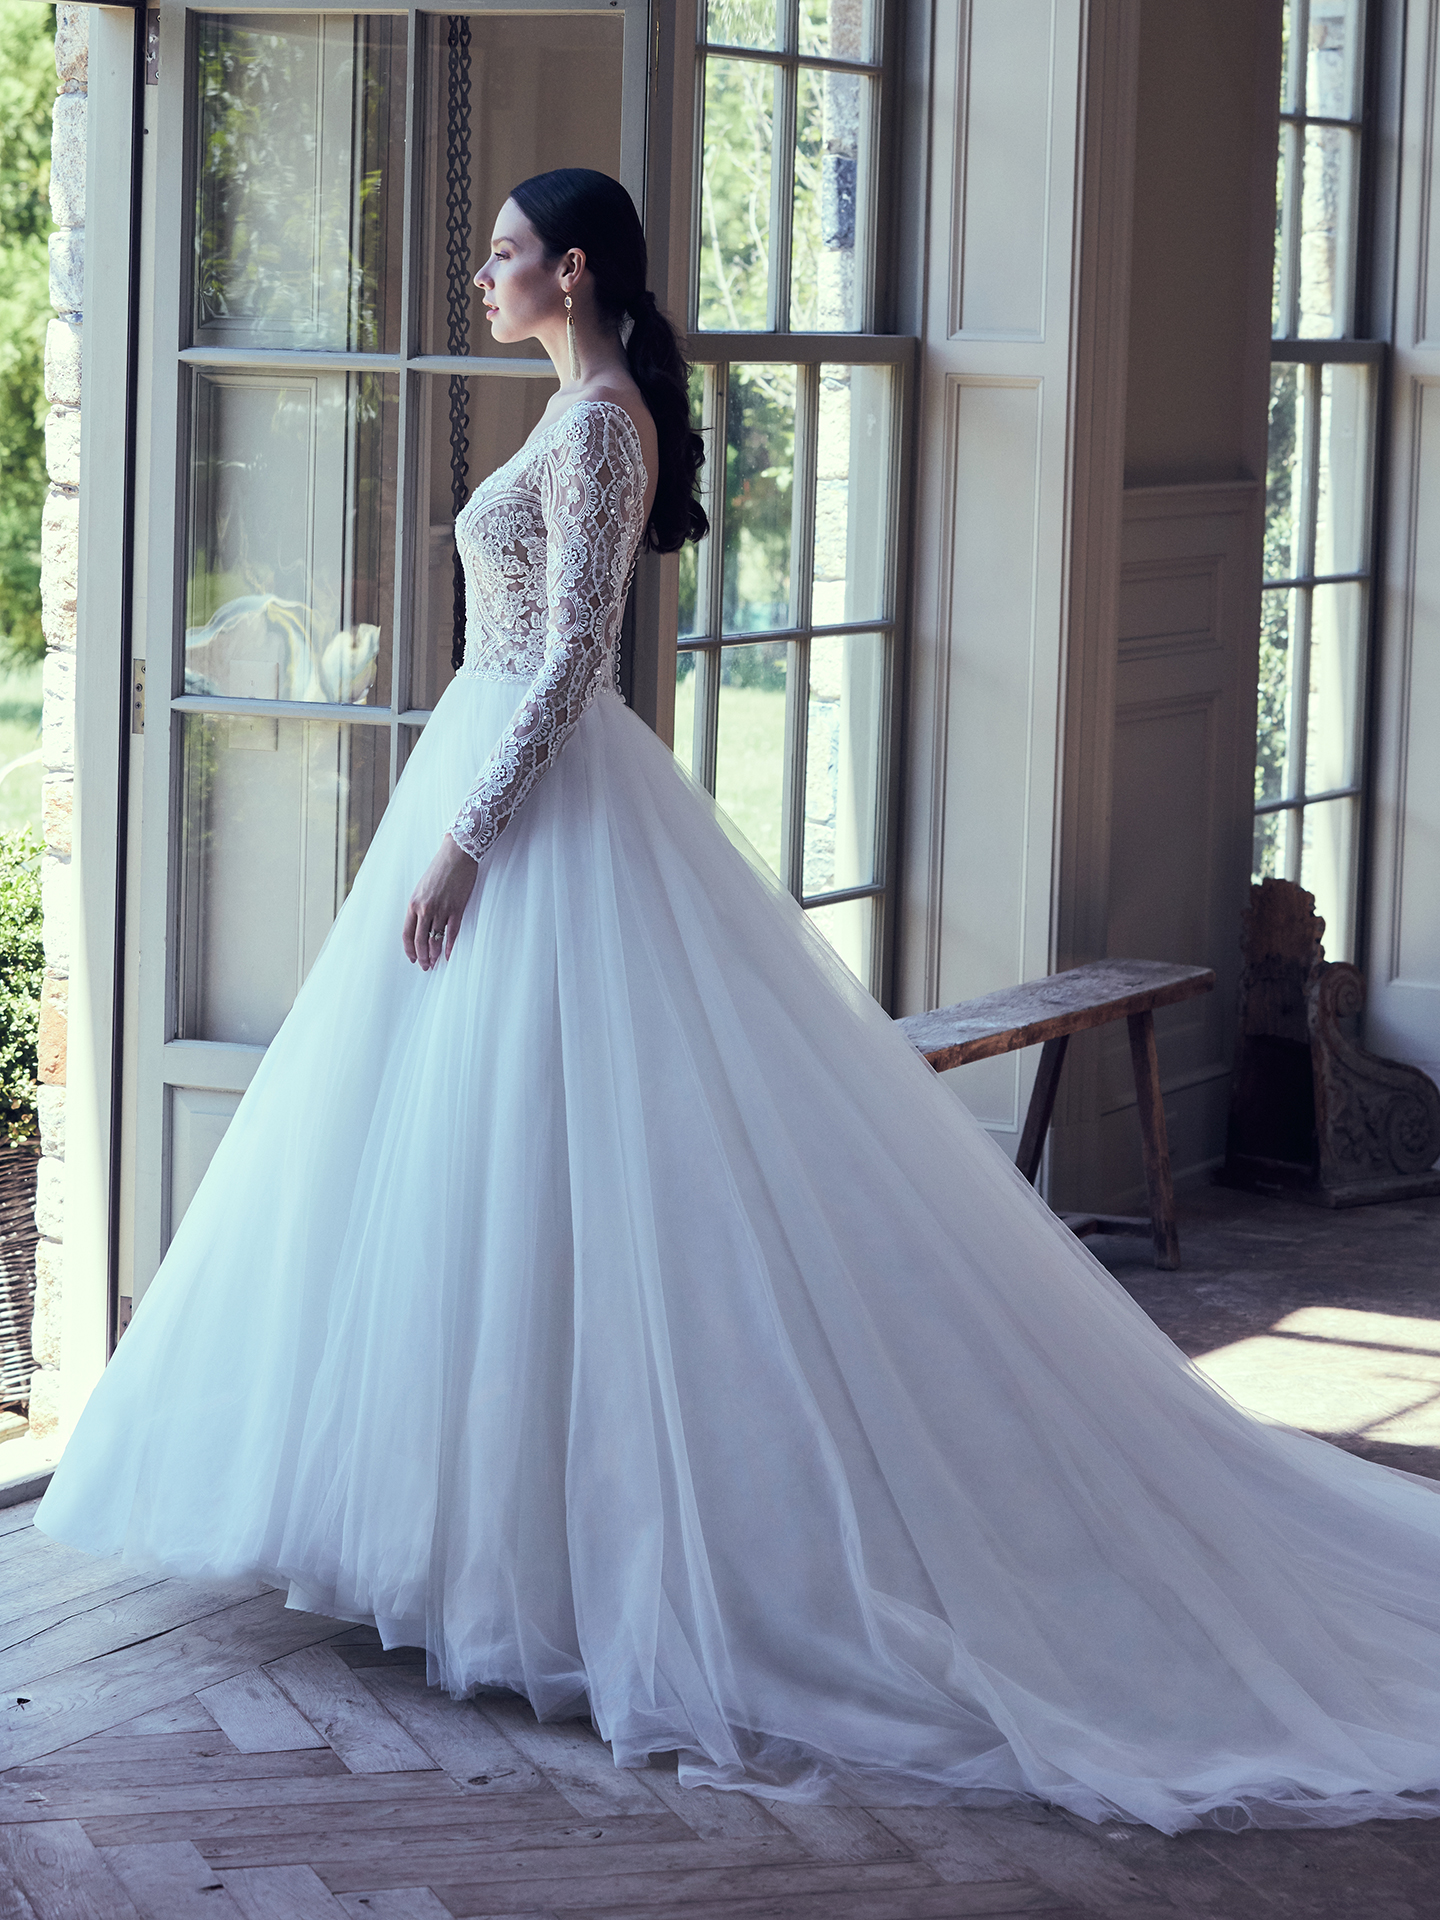 Maggie Sottero - Mallory Dawn - Side View